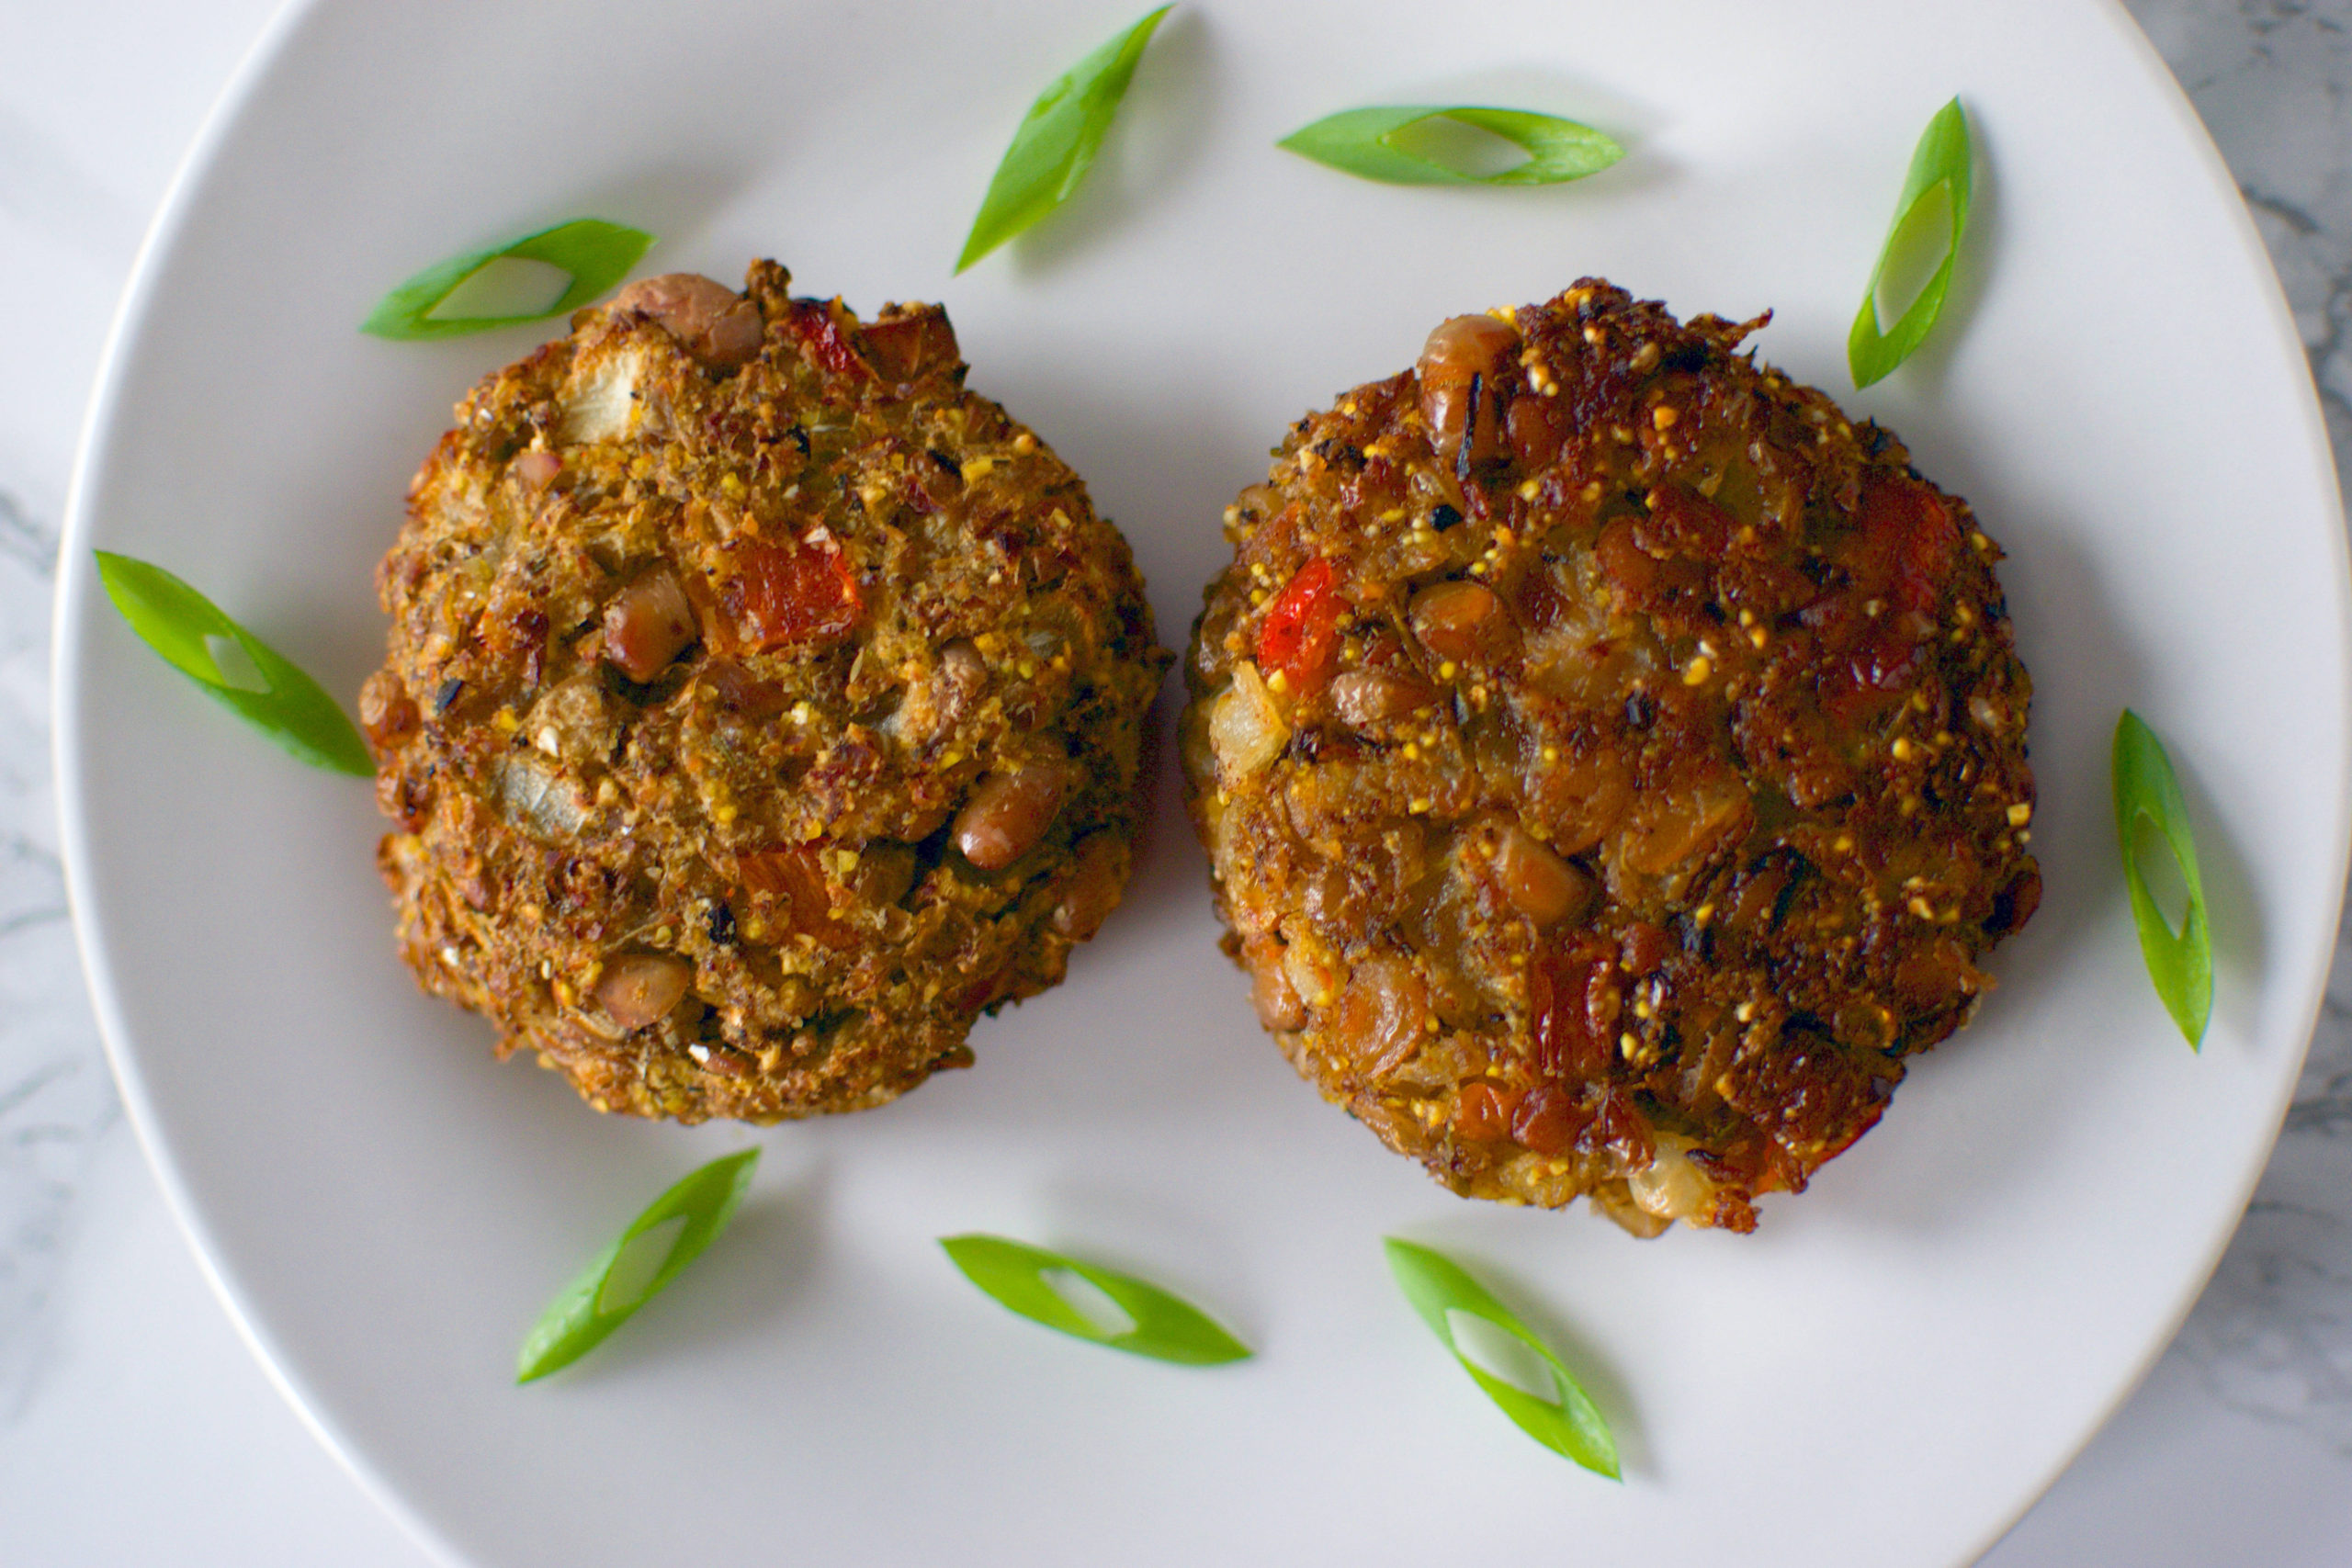 Air fried black-eyed pea fritters vs. fried